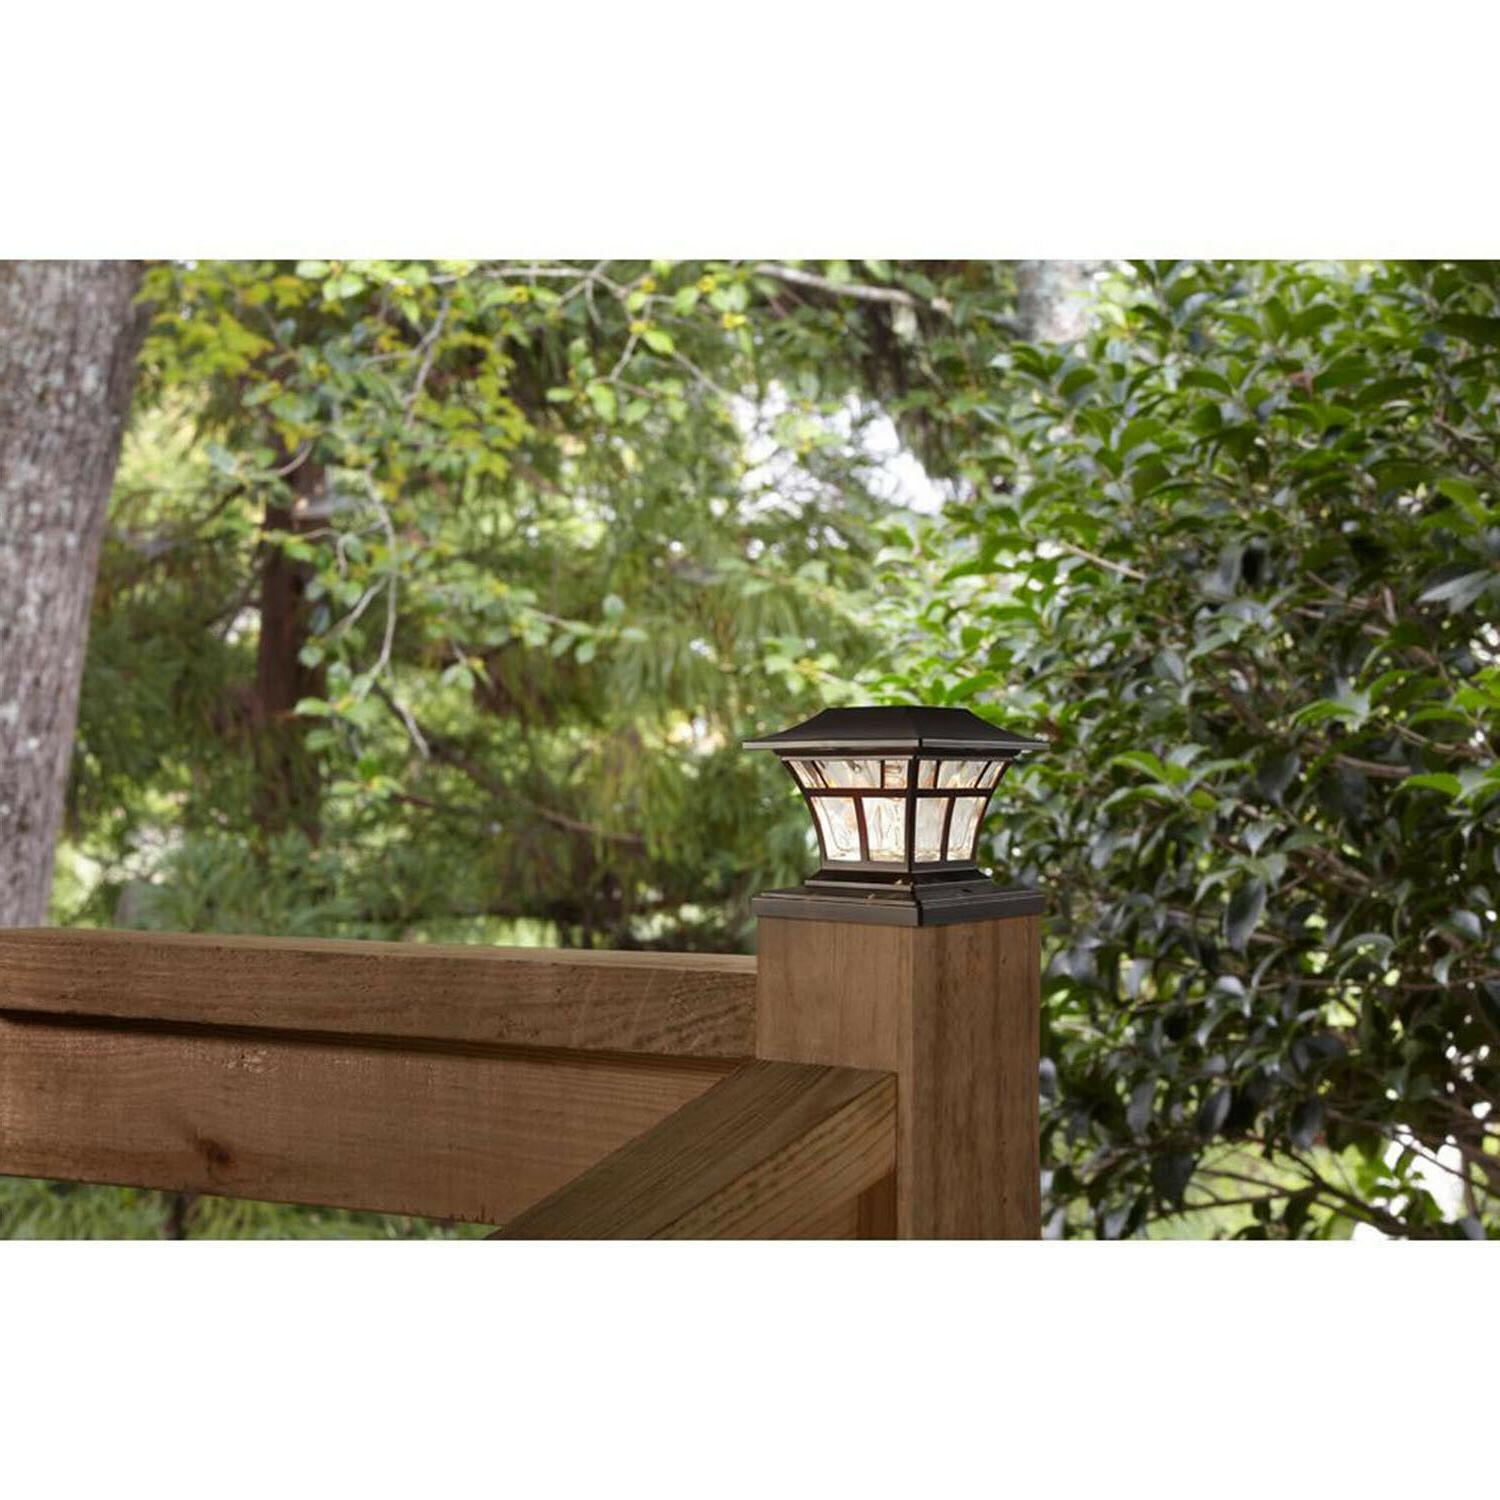 "2-PACK BRONZE DECK POST CAP 4""x4"" Lighting"